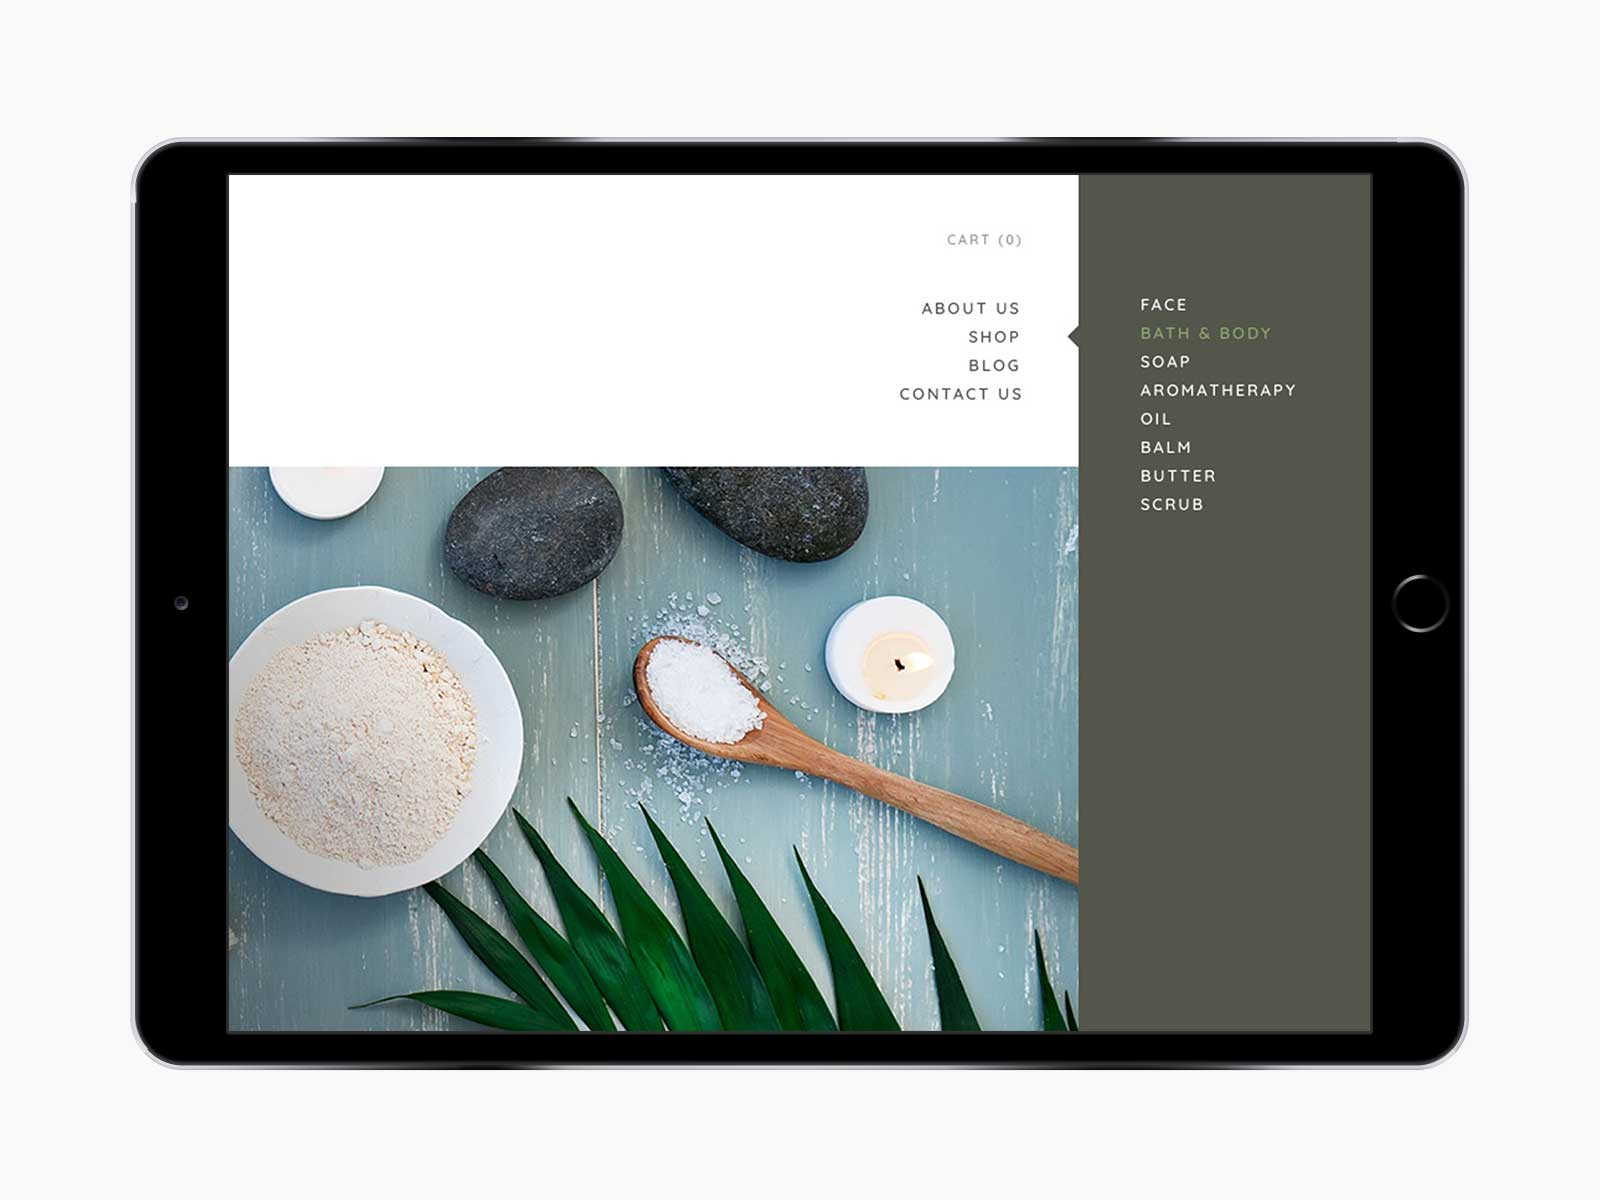 Leaf Skin Co. responsive website for navigation menu on iPad in landscape view